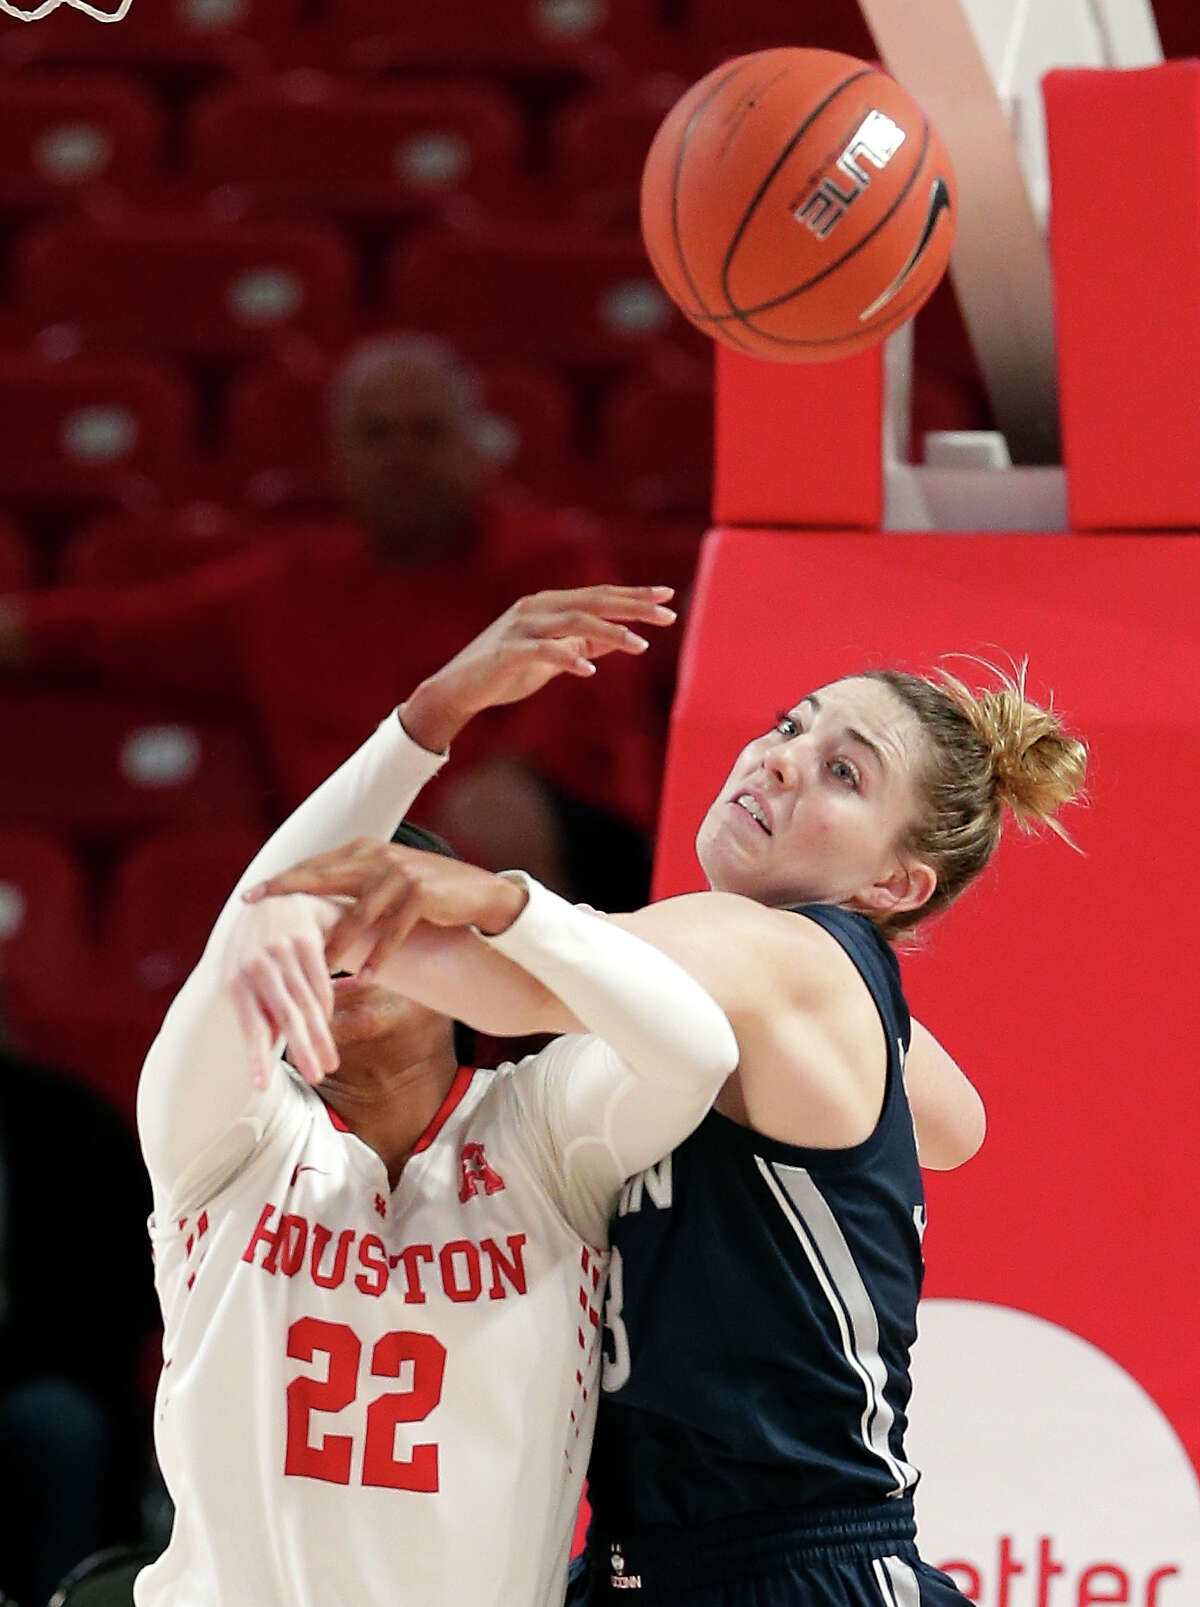 Houston forward Myyah West (22) has her shot-attempt knocked away by Connecticut guard/forward Katie Lou Samuelson (33) during the first half of an NCAA college basketball game Sunday, Jan. 6, 2019, in Houston. (AP Photo/Michael Wyke)